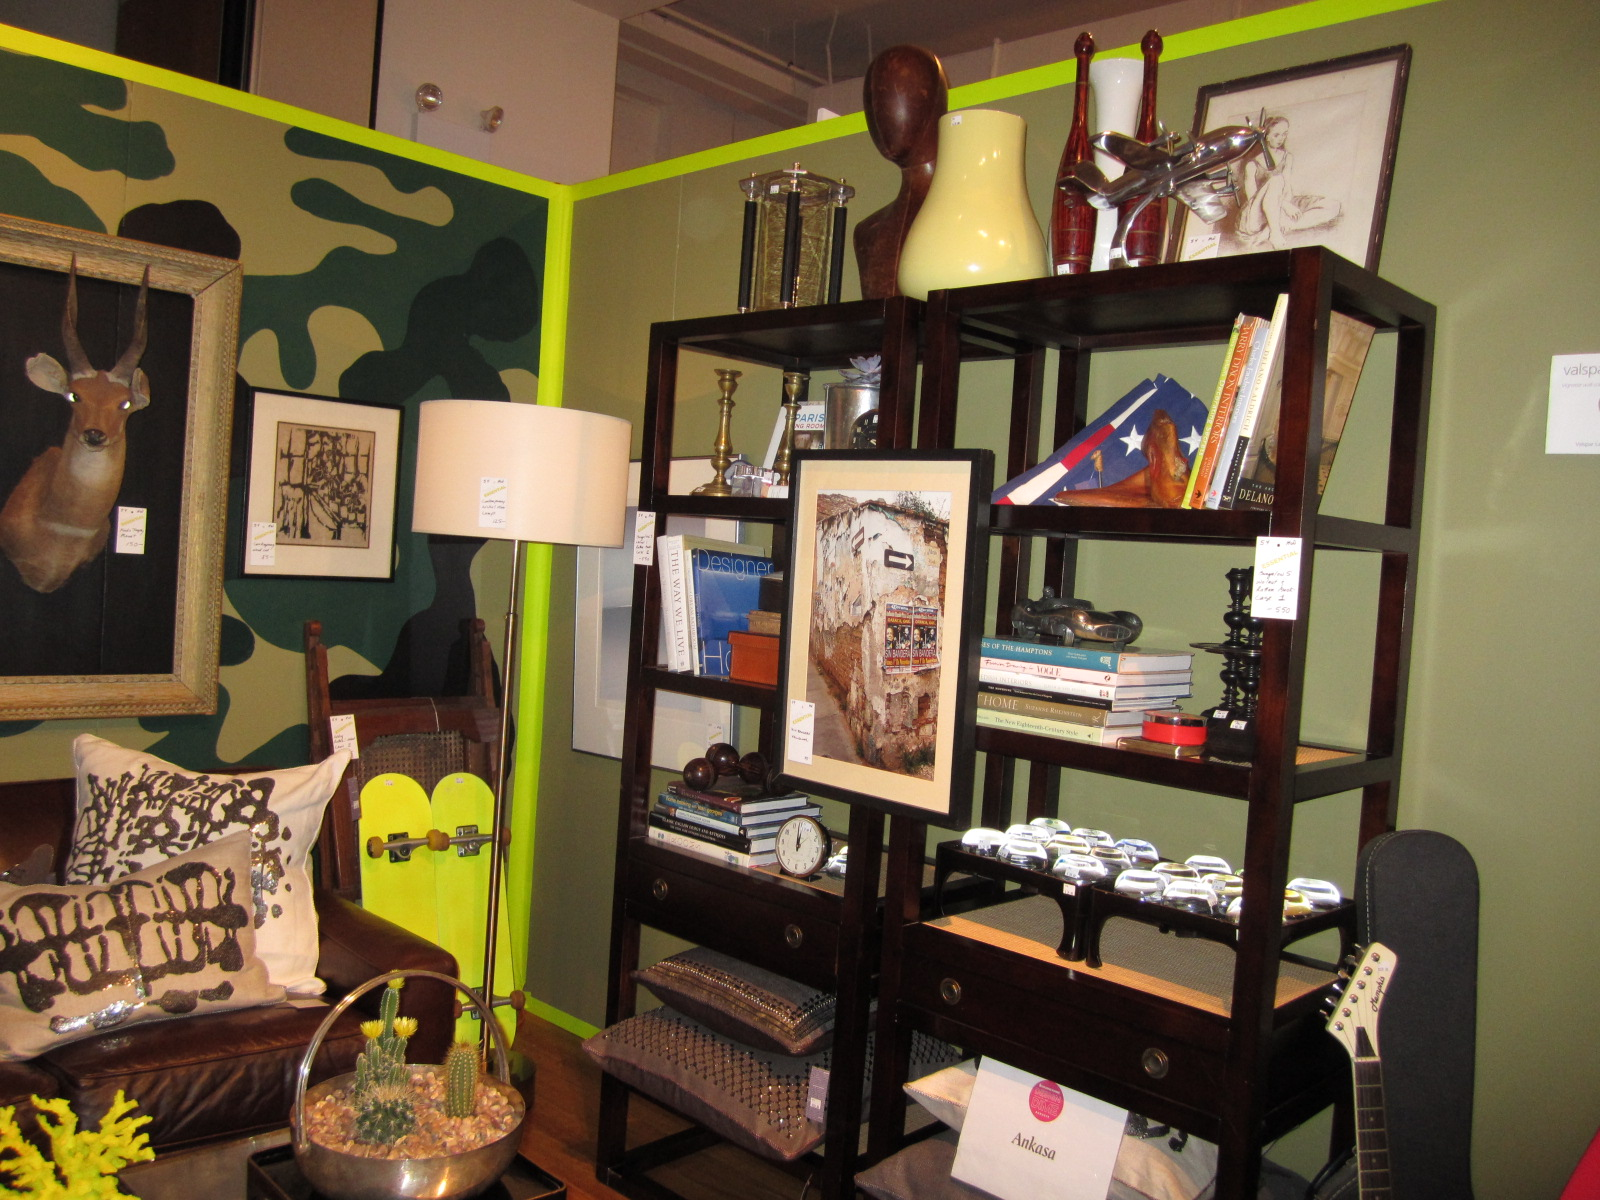 They Had A Trove Of John Derian Paperweights To Rival His Store, And Worked  With Housing Works Donations.